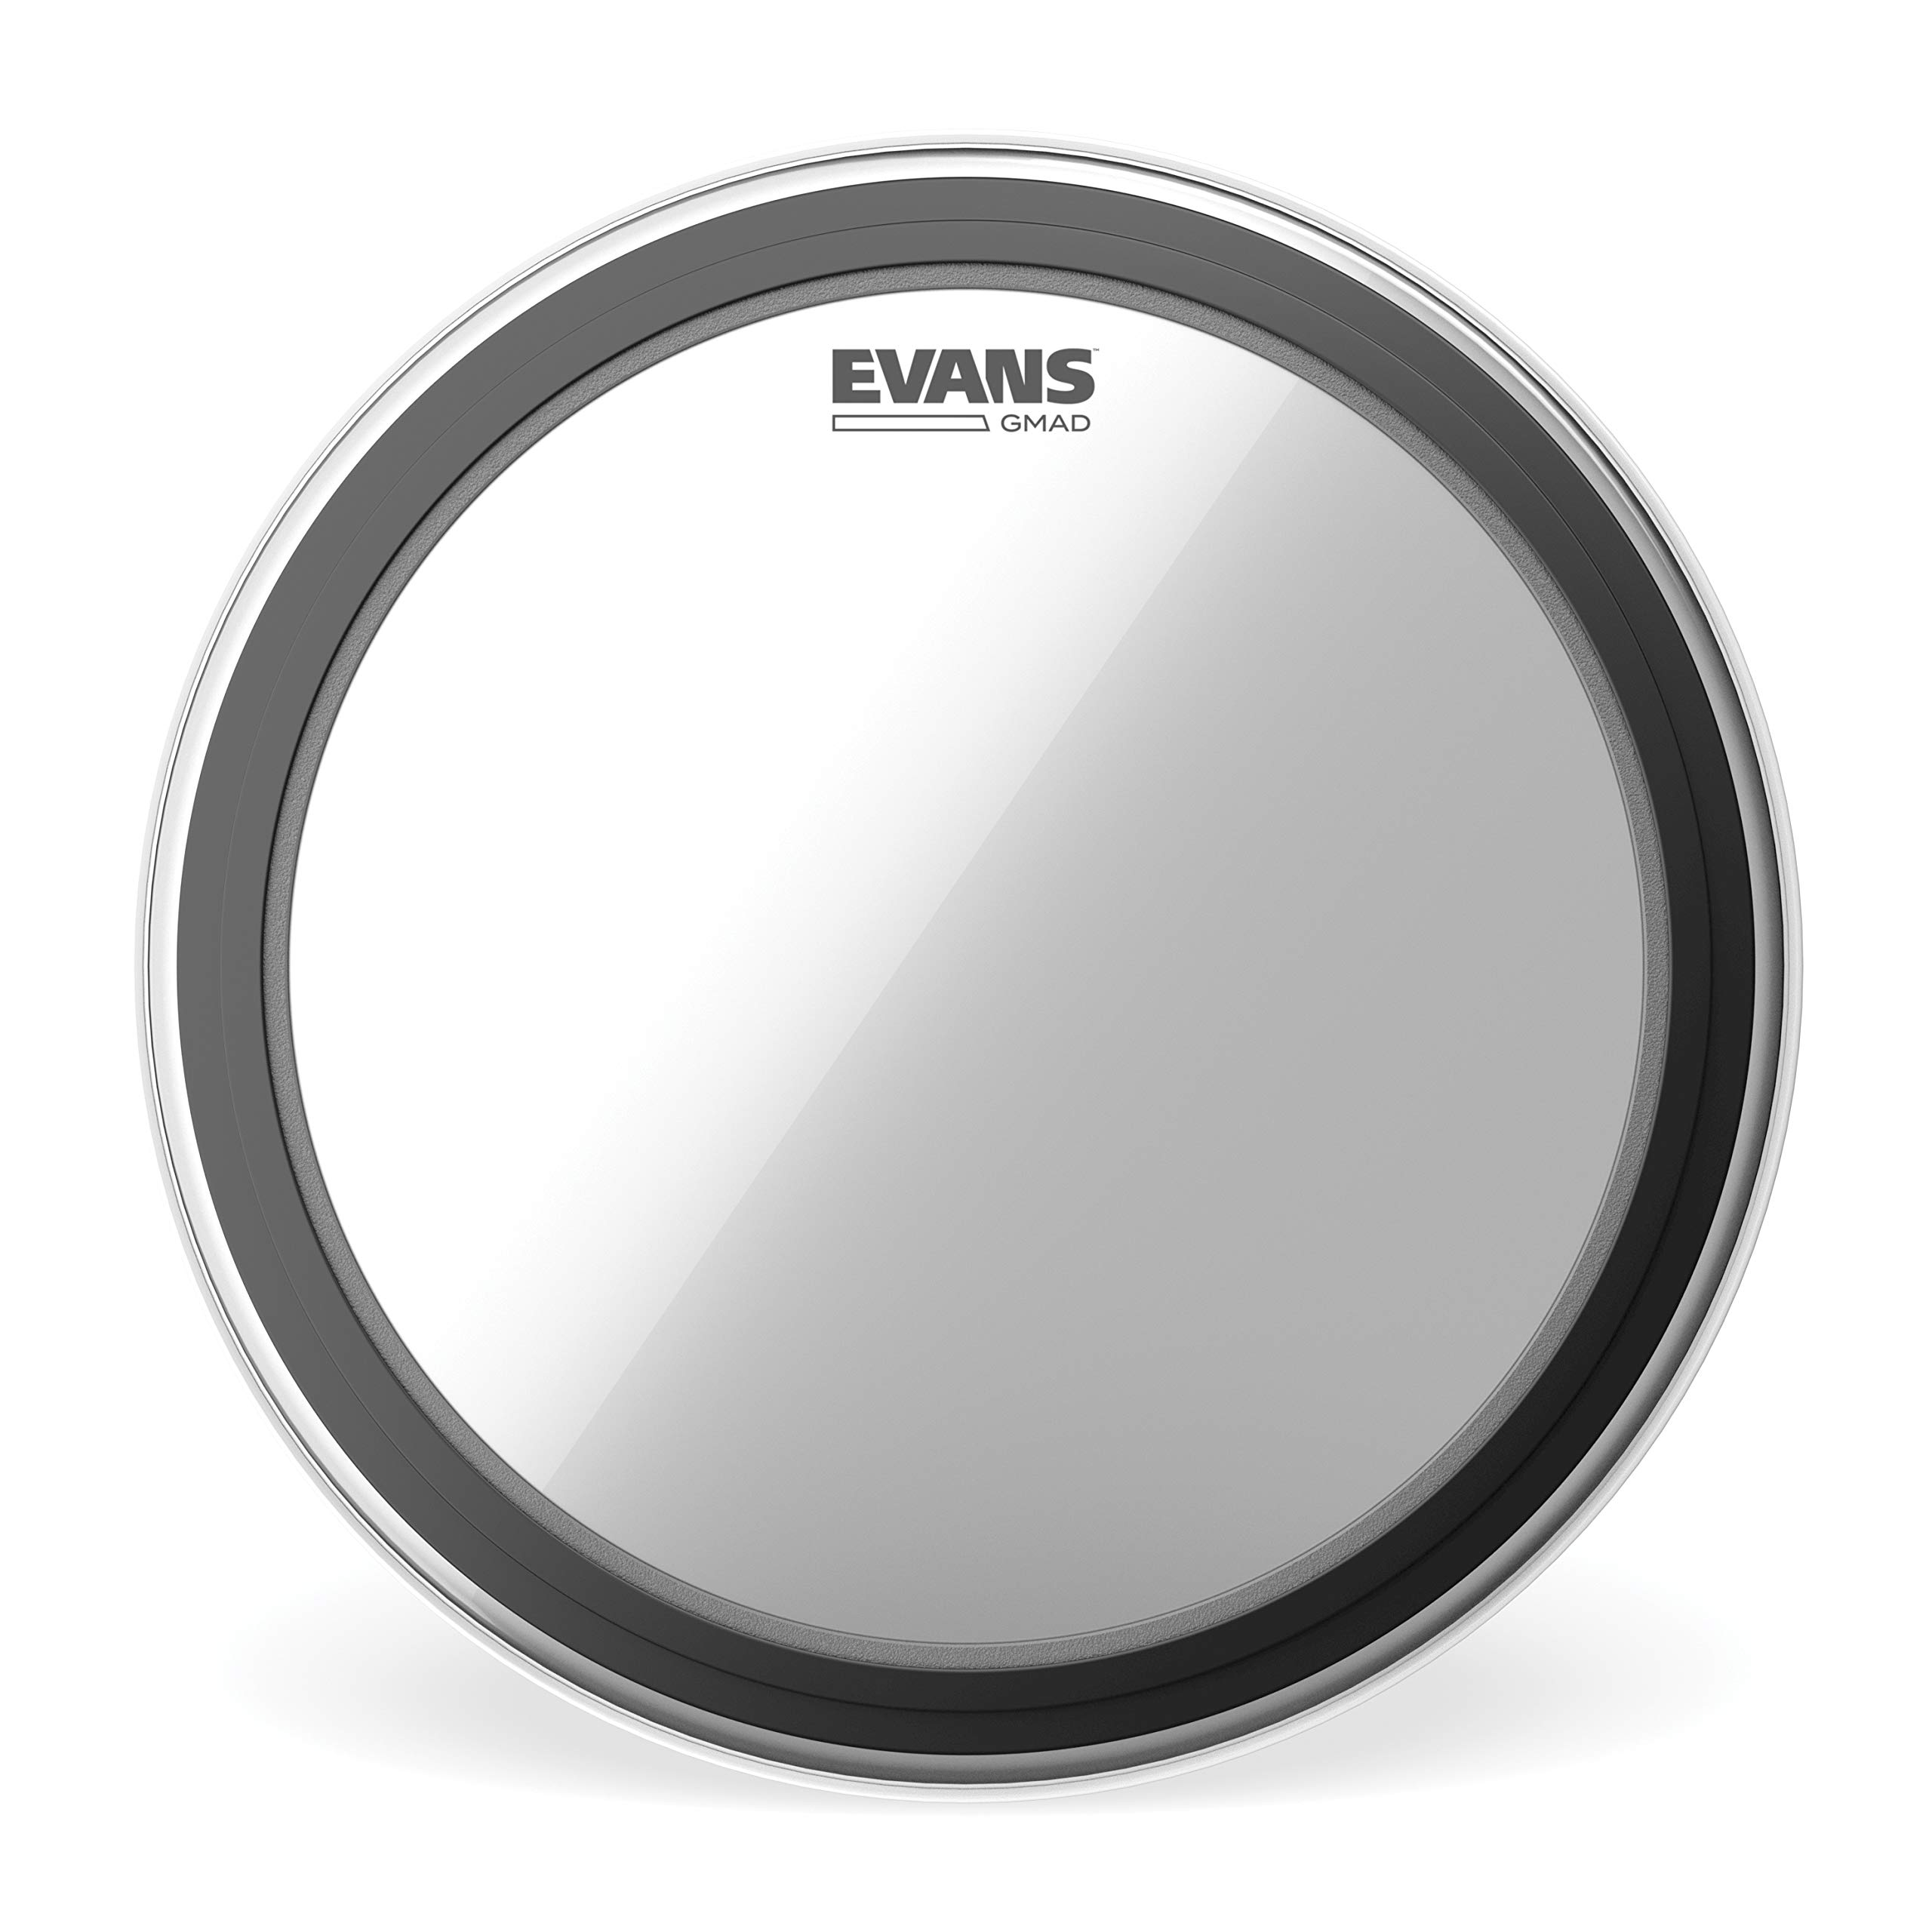 Evans GMAD Clear Bass Drum Head, 22 Inch by Evans